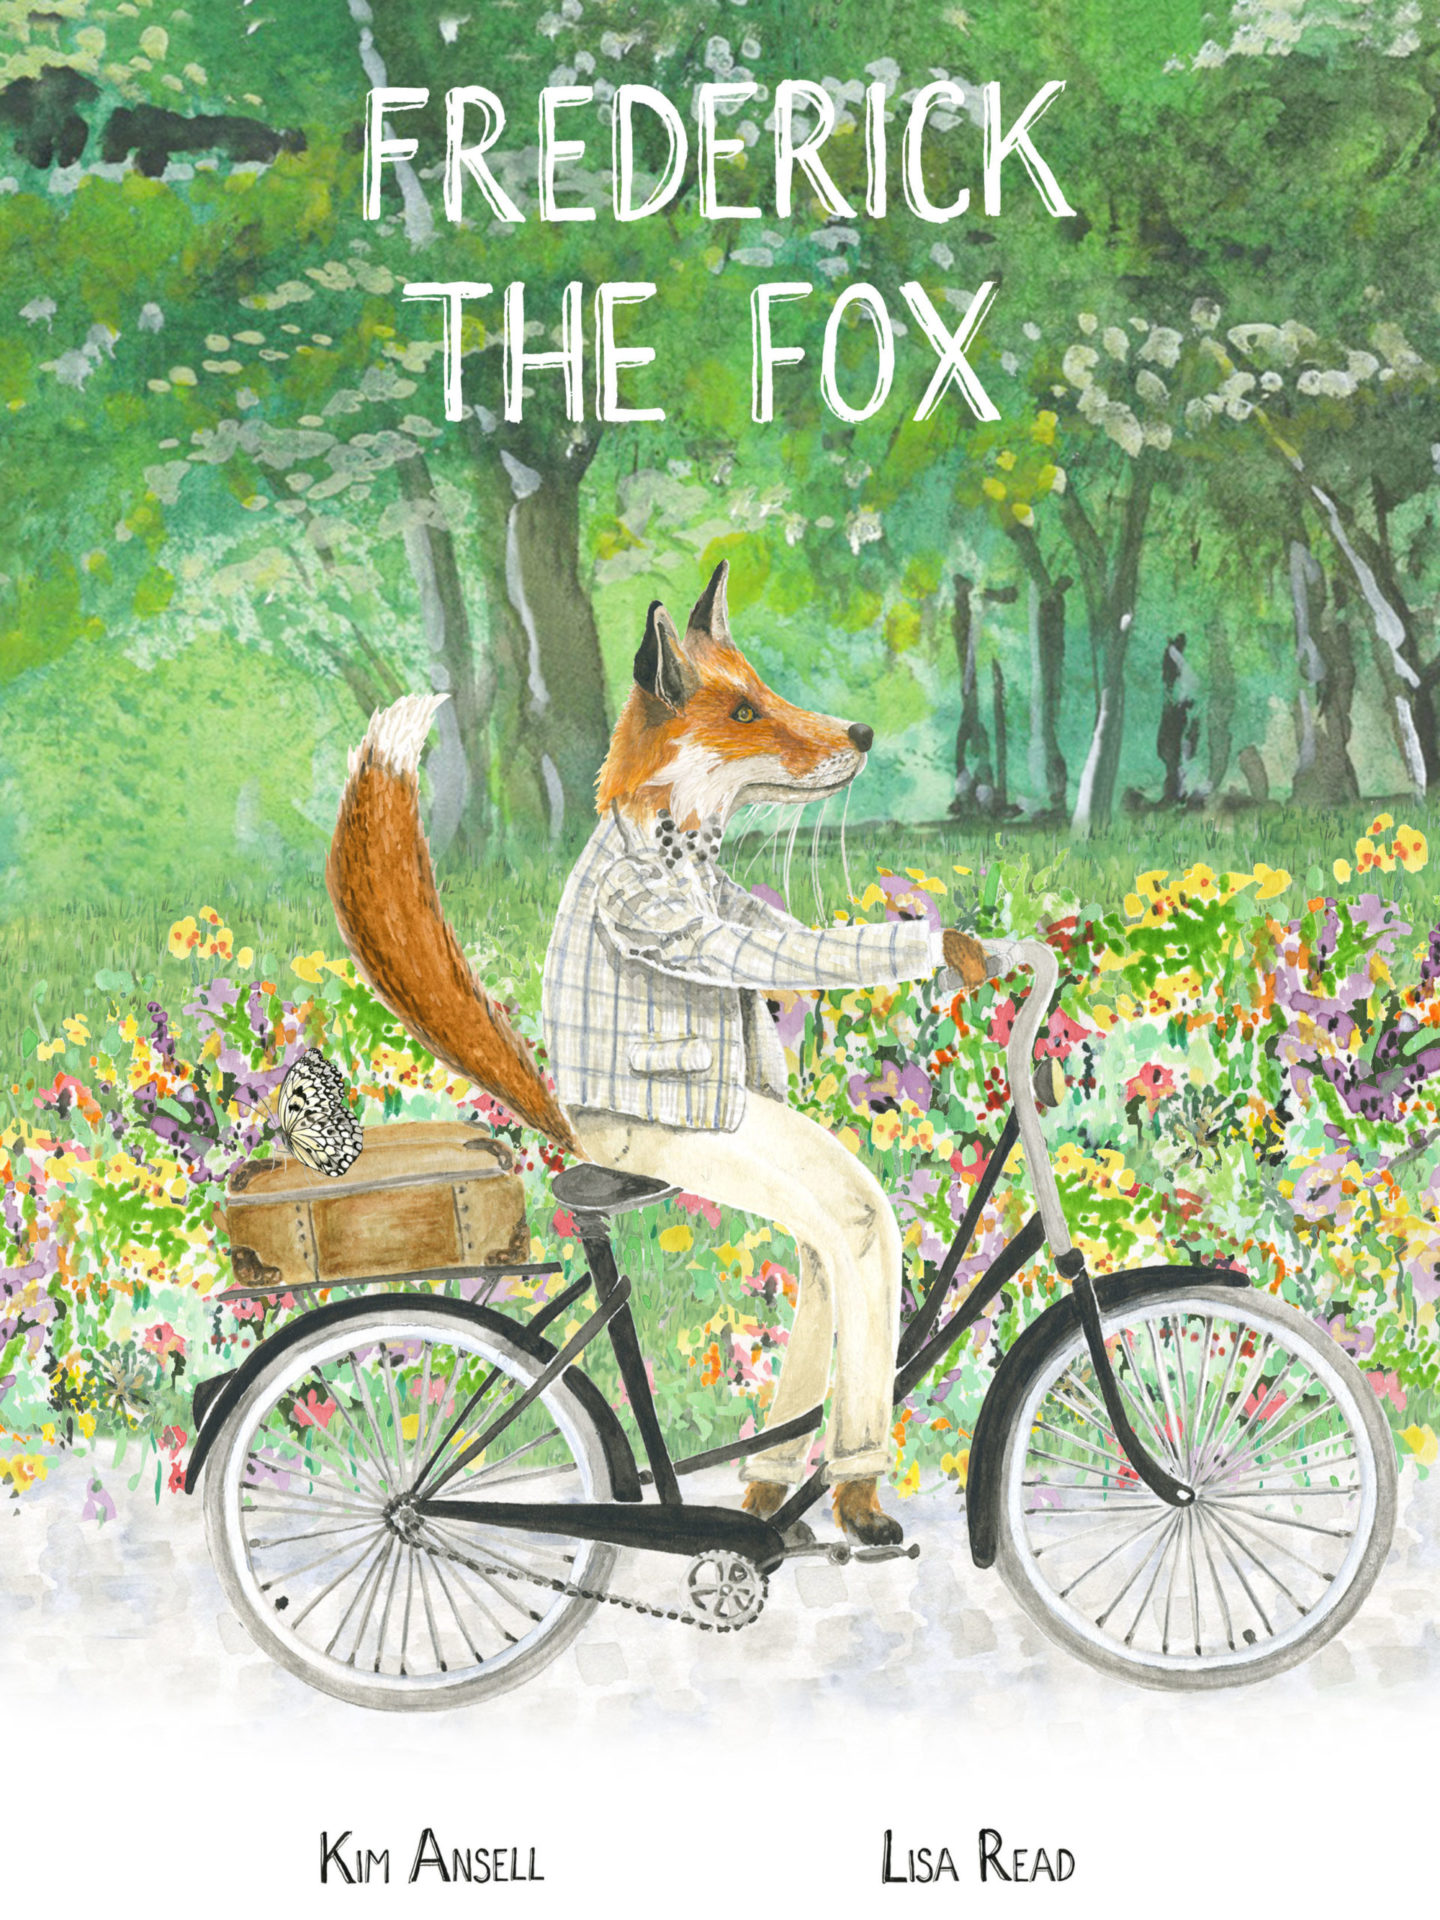 Frederick the Fox by Kim Ansell, Lisa Read